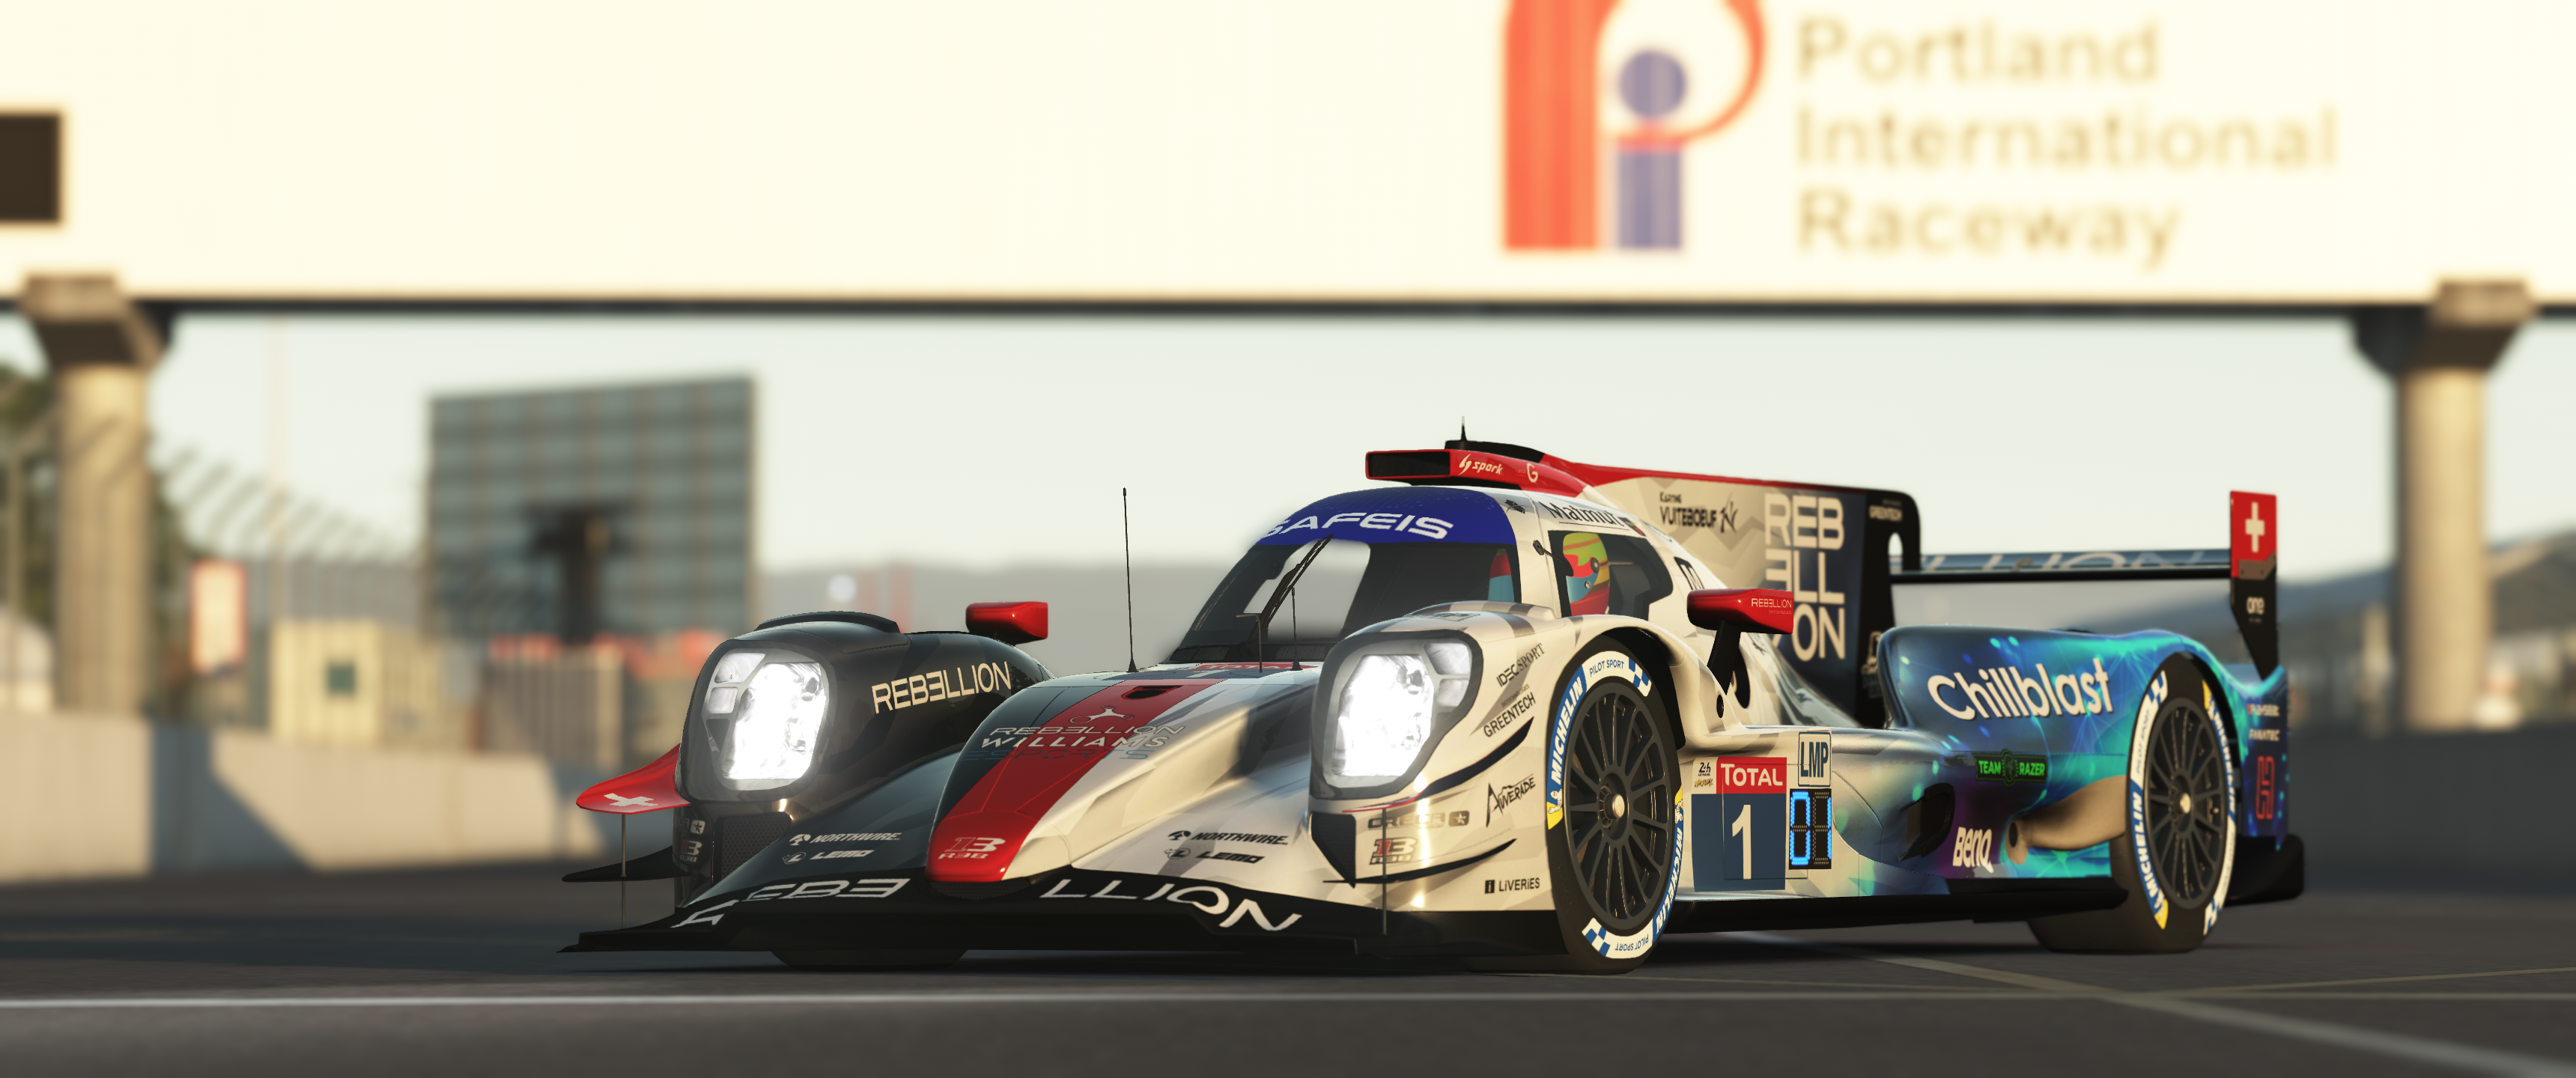 rFactor2 2020-06-30 01-00-01-31.png